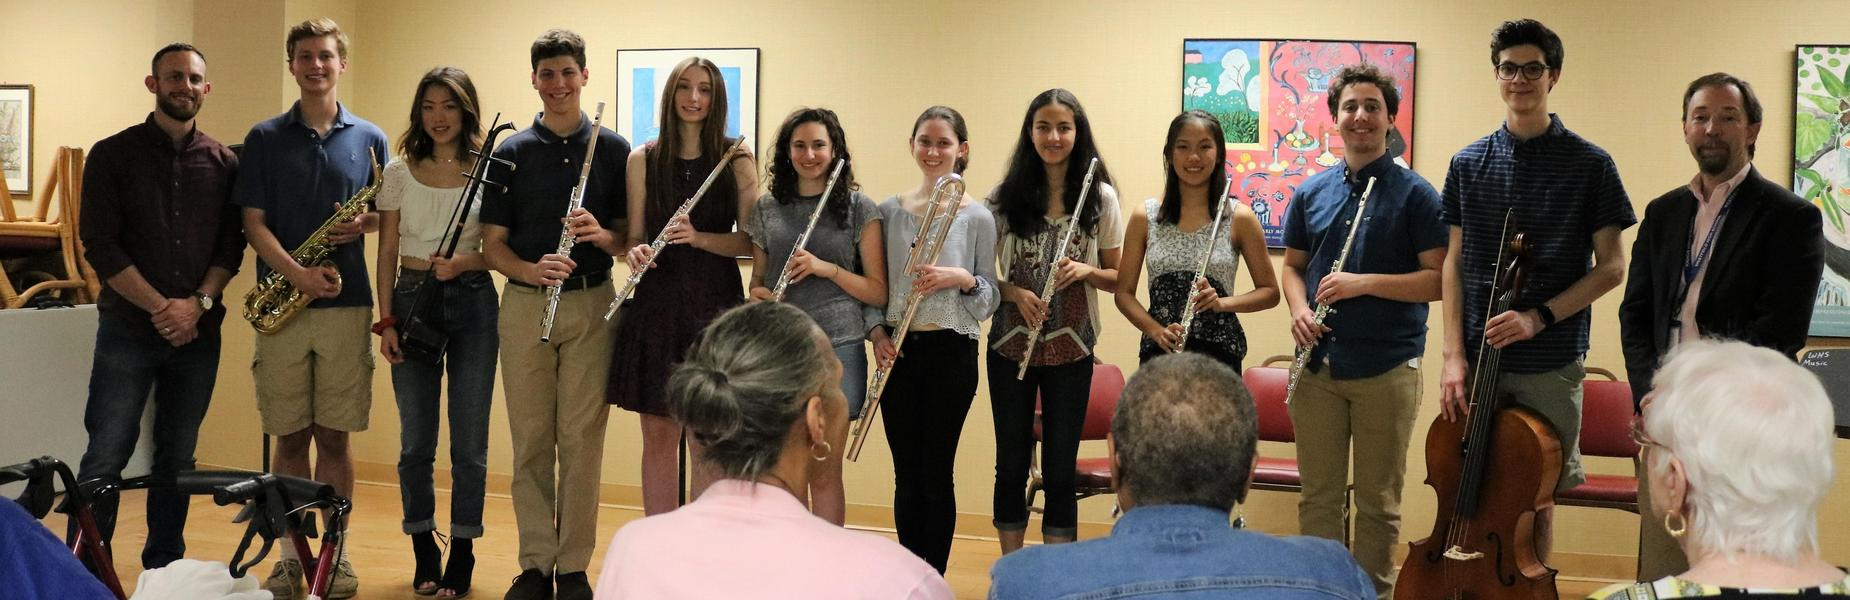 Photo of members of WHS Band posing for a picture after a volunteer concert for senior citizens.